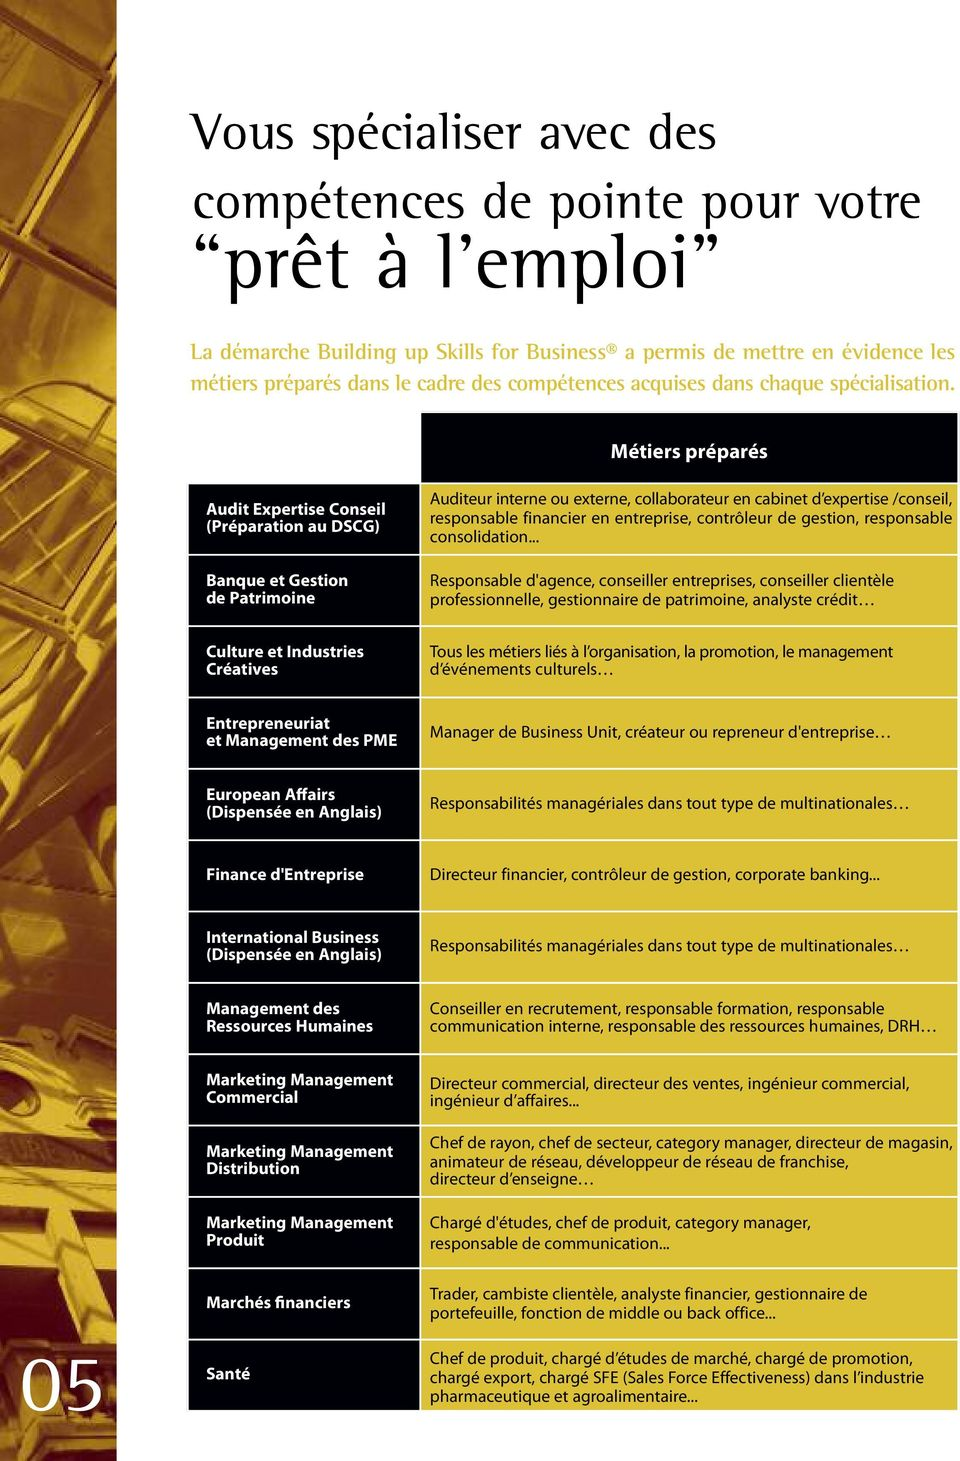 Métiers préparés Audit Expertise Conseil (Préparation au DSCG) Banque et Gestion de Patrimoine Auditeur interne ou externe, collaborateur en cabinet d expertise /conseil, responsable financier en